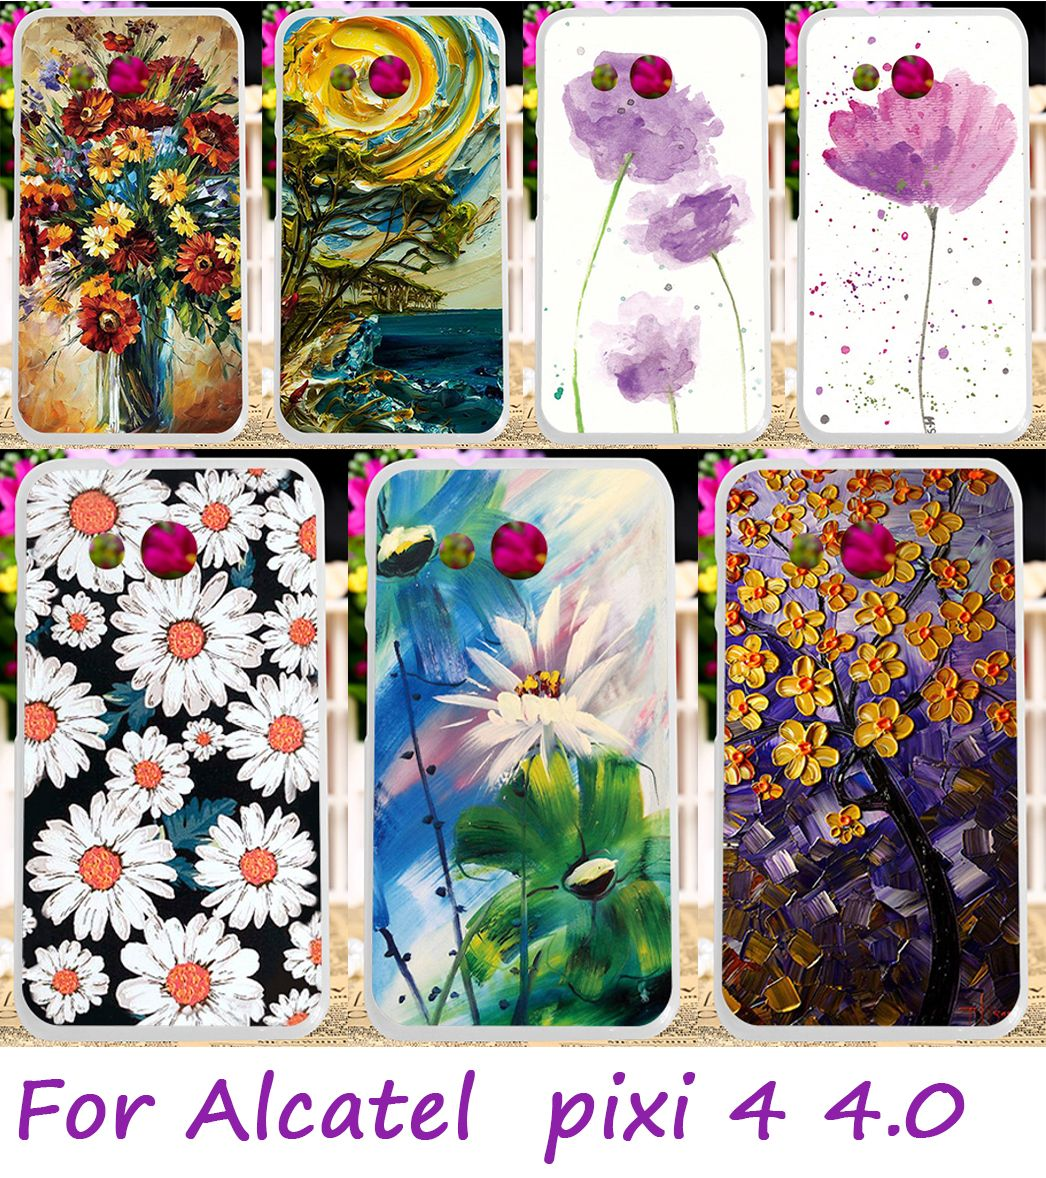 AKABEILA Soft TPU Mobile Phone Case For alcatel OneTouch Pixi 4 4.0 inch OT4034 4034D 4034X 4034M One Touch Pixi4 4034 Diy Cover